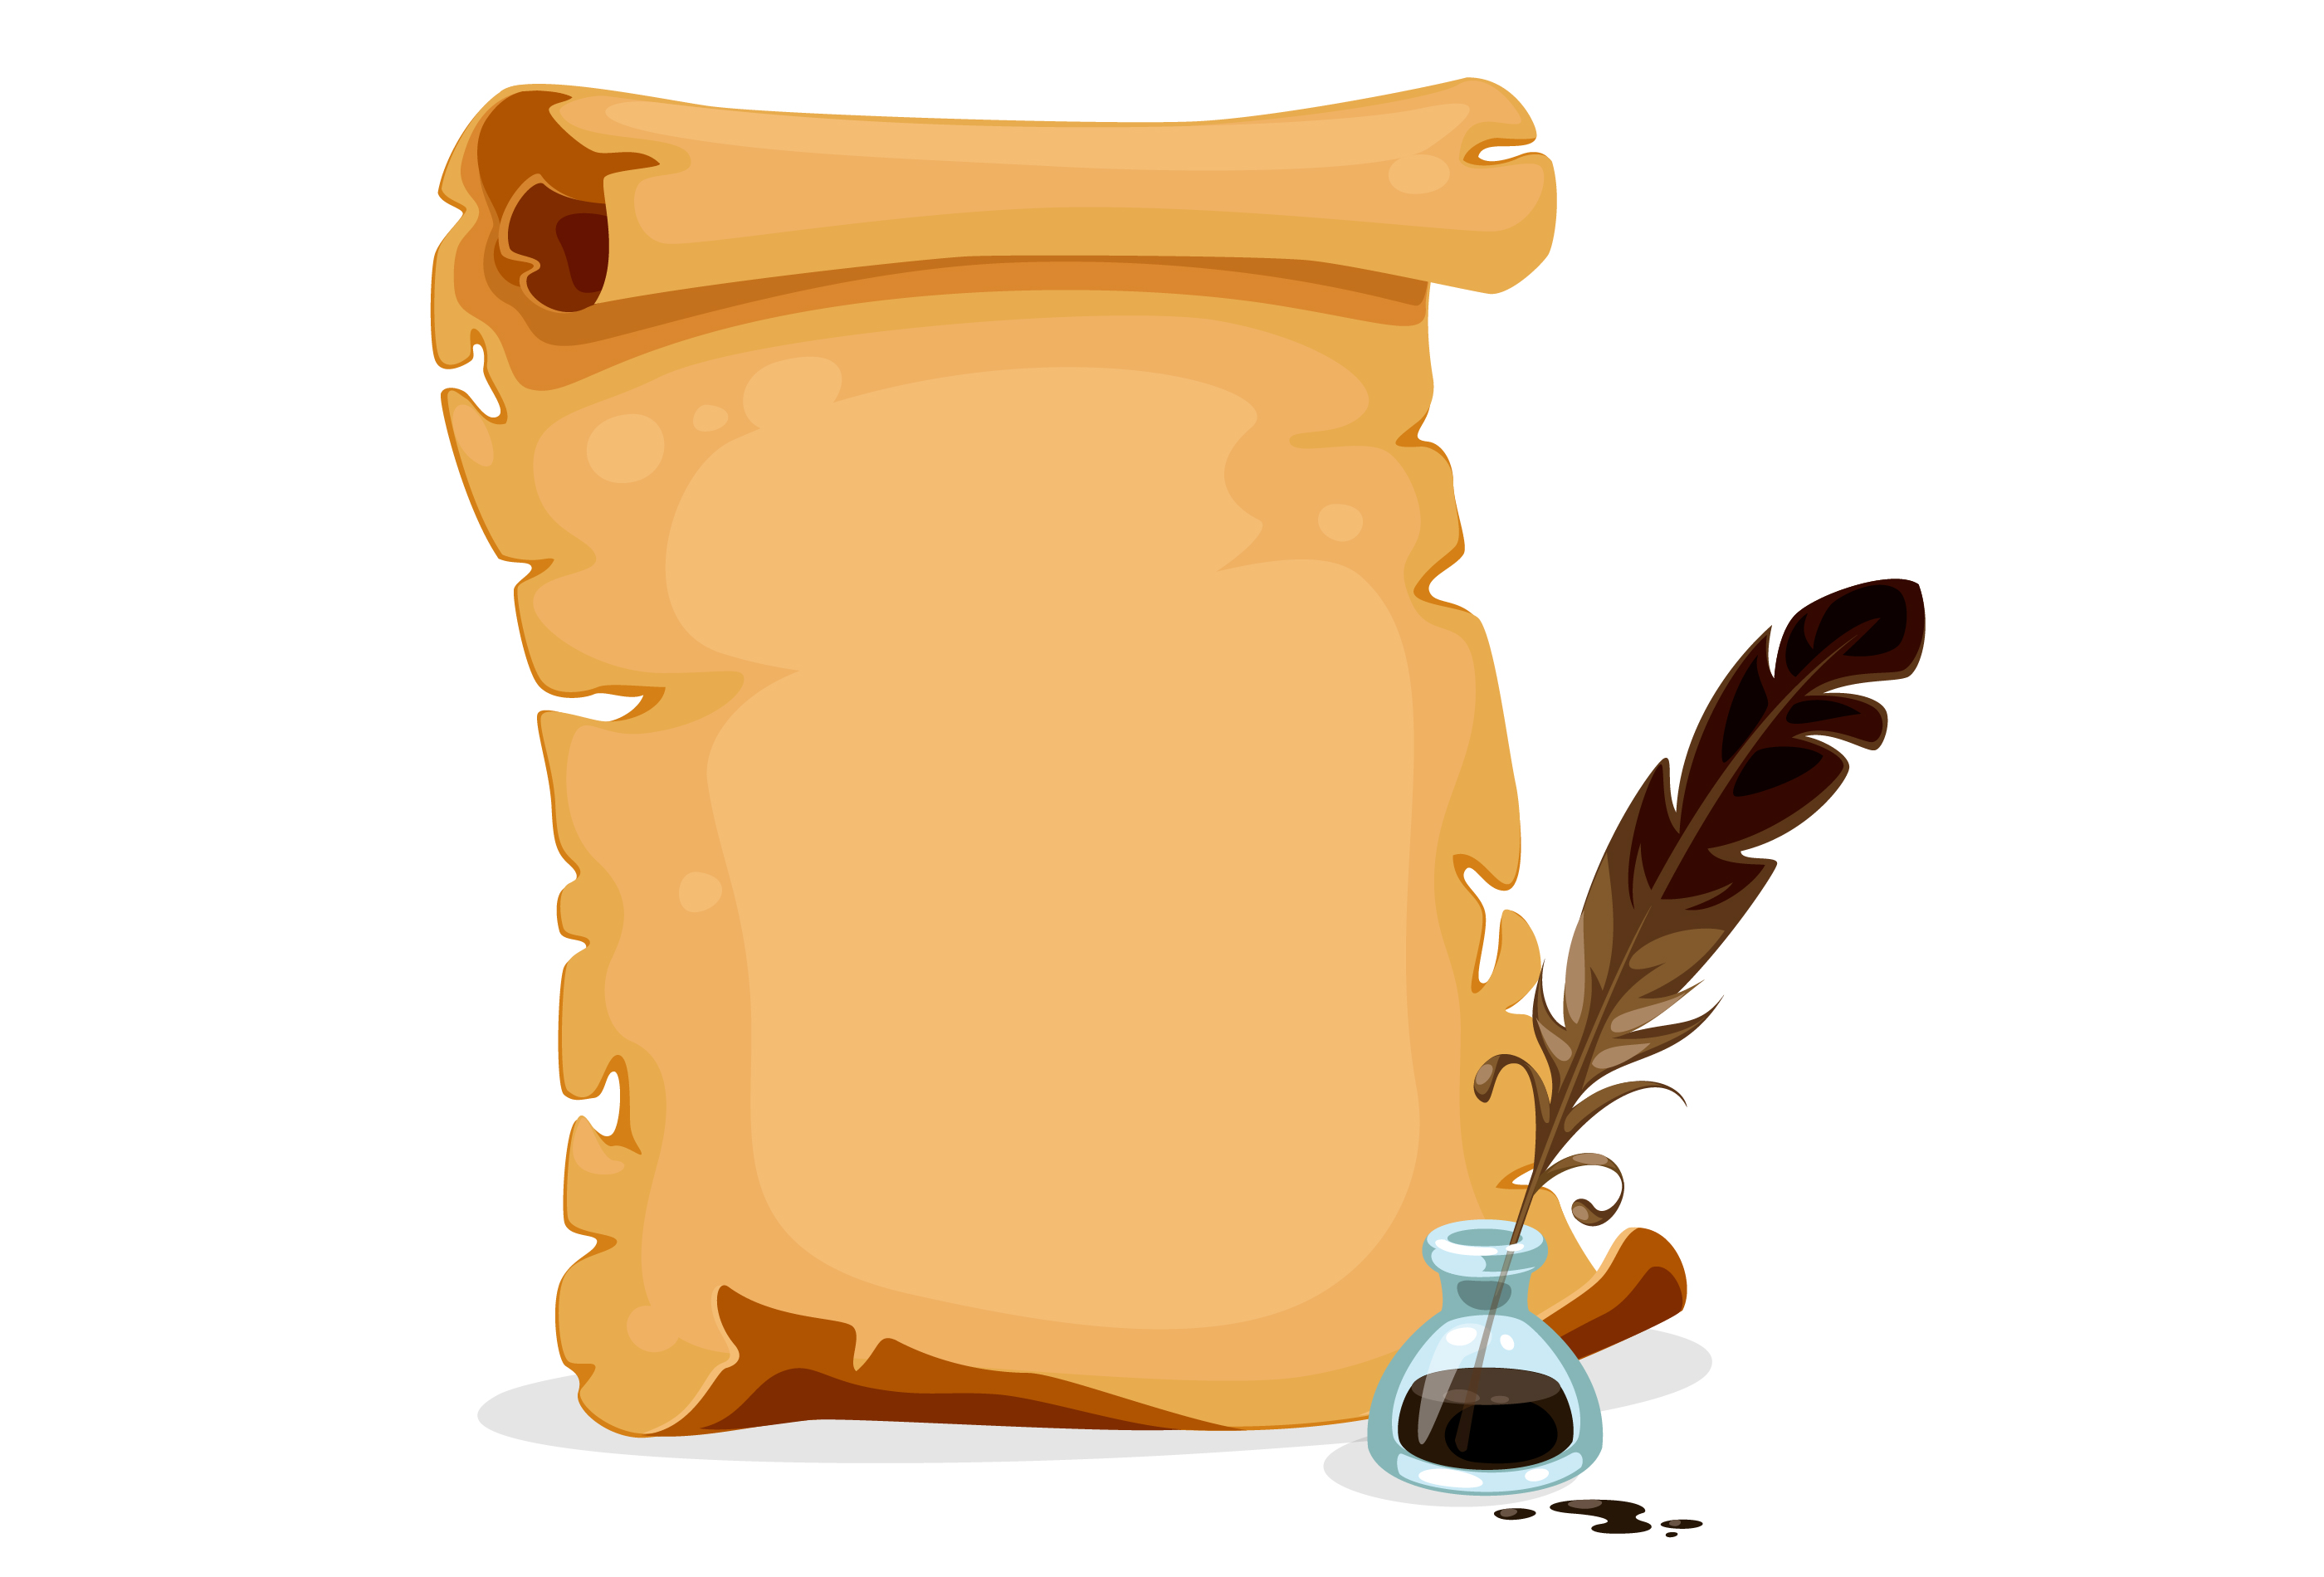 Old Scroll Paper With Ink Bottle And Feather Download Free Vectors Clipart Graphics Vector Art